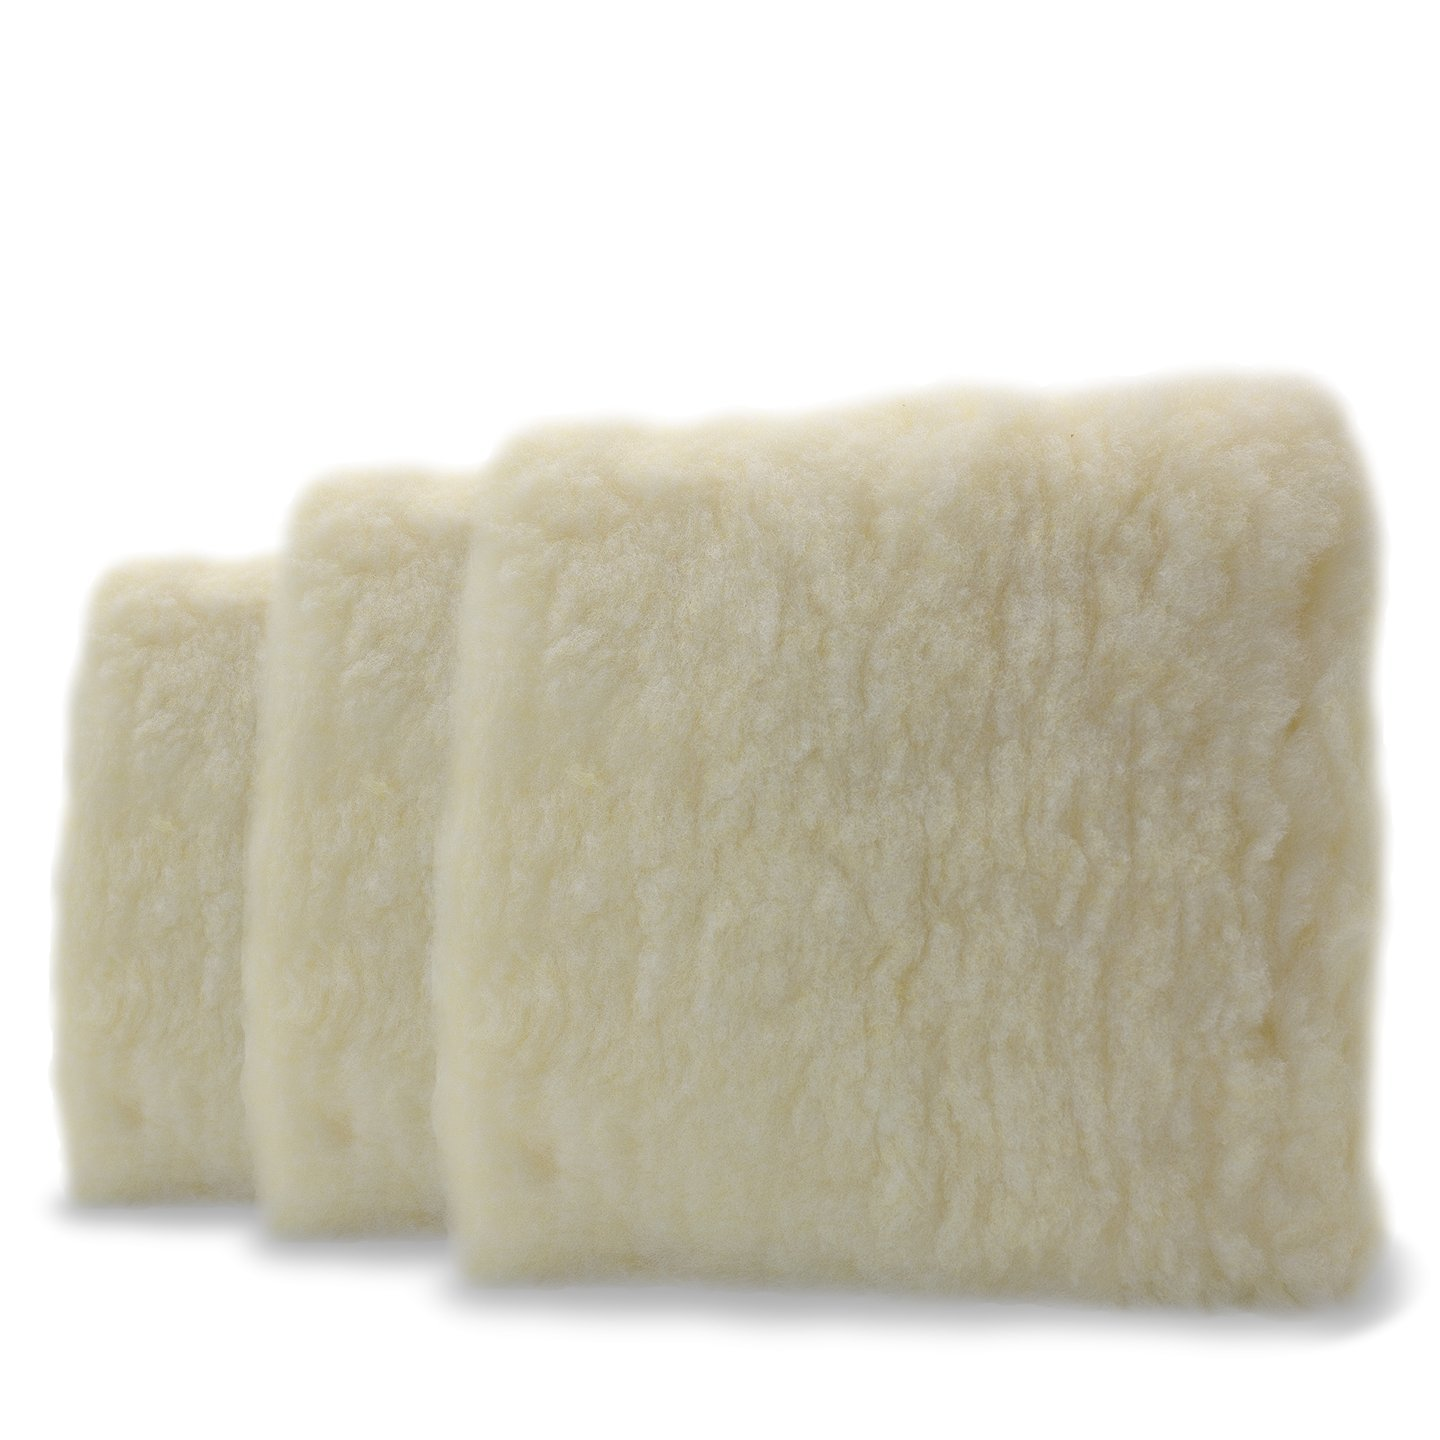 Adam's Professional 10'' Car Wash Pad - Made of Professional Grade Plush Synthetic Wool - Safely Wash Your Vehicle Without Introducing New Scratches or Swirls - Swirl Free Washing Guaranteed (3 Pack)